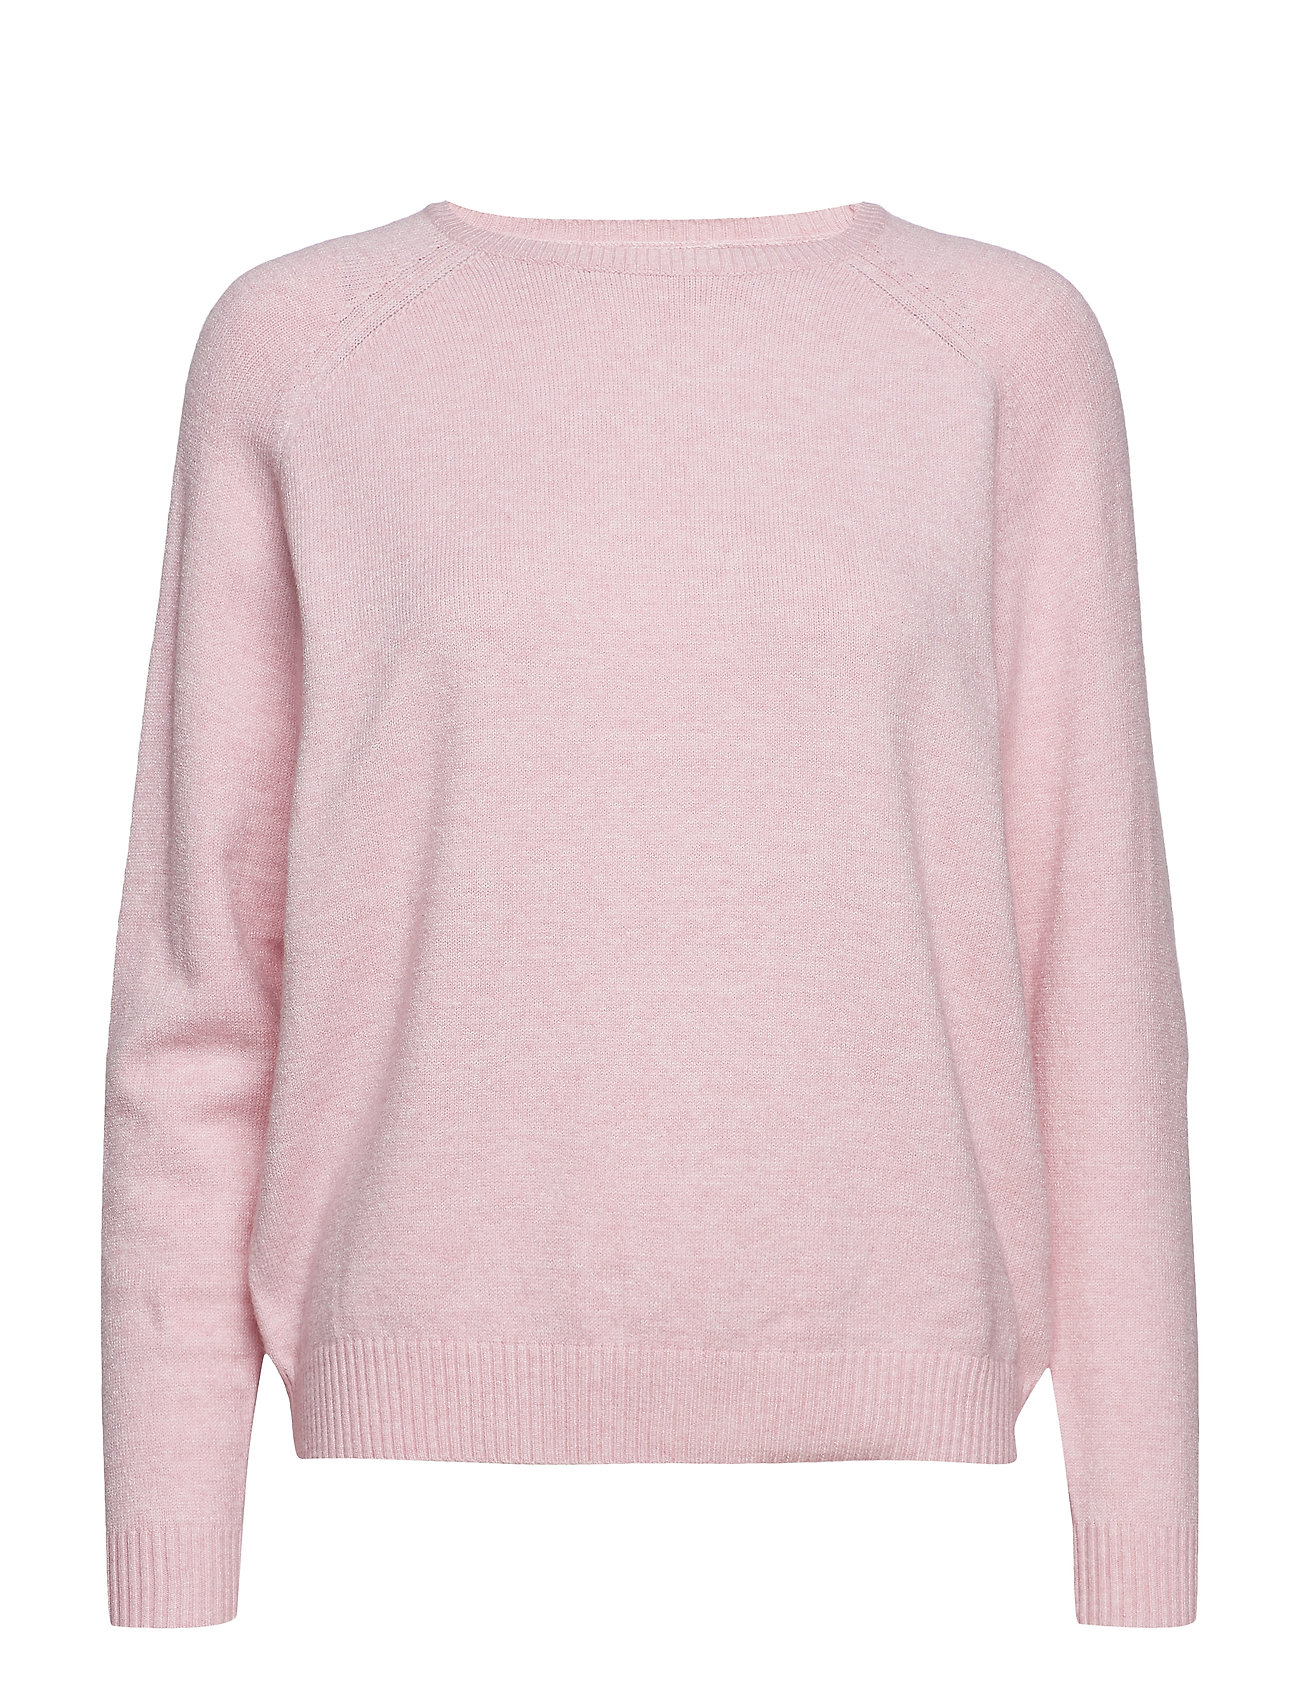 ONLY onlLESLY KINGS L/S PULLOVER KNT NOOS - LIGHT PINK